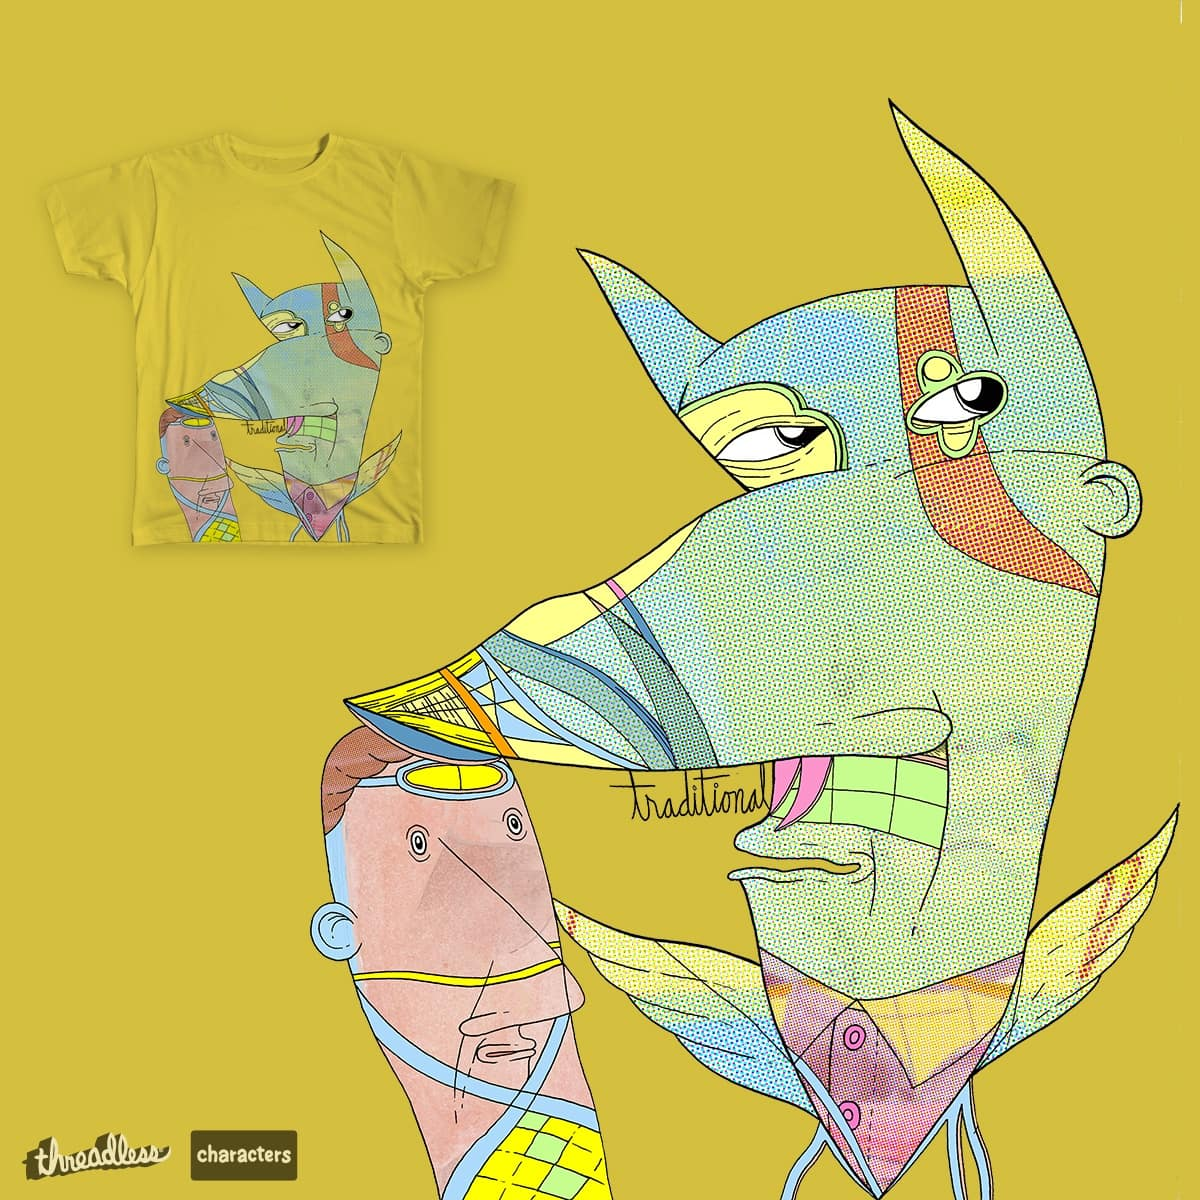 traditional by Peter Thompson on Threadless